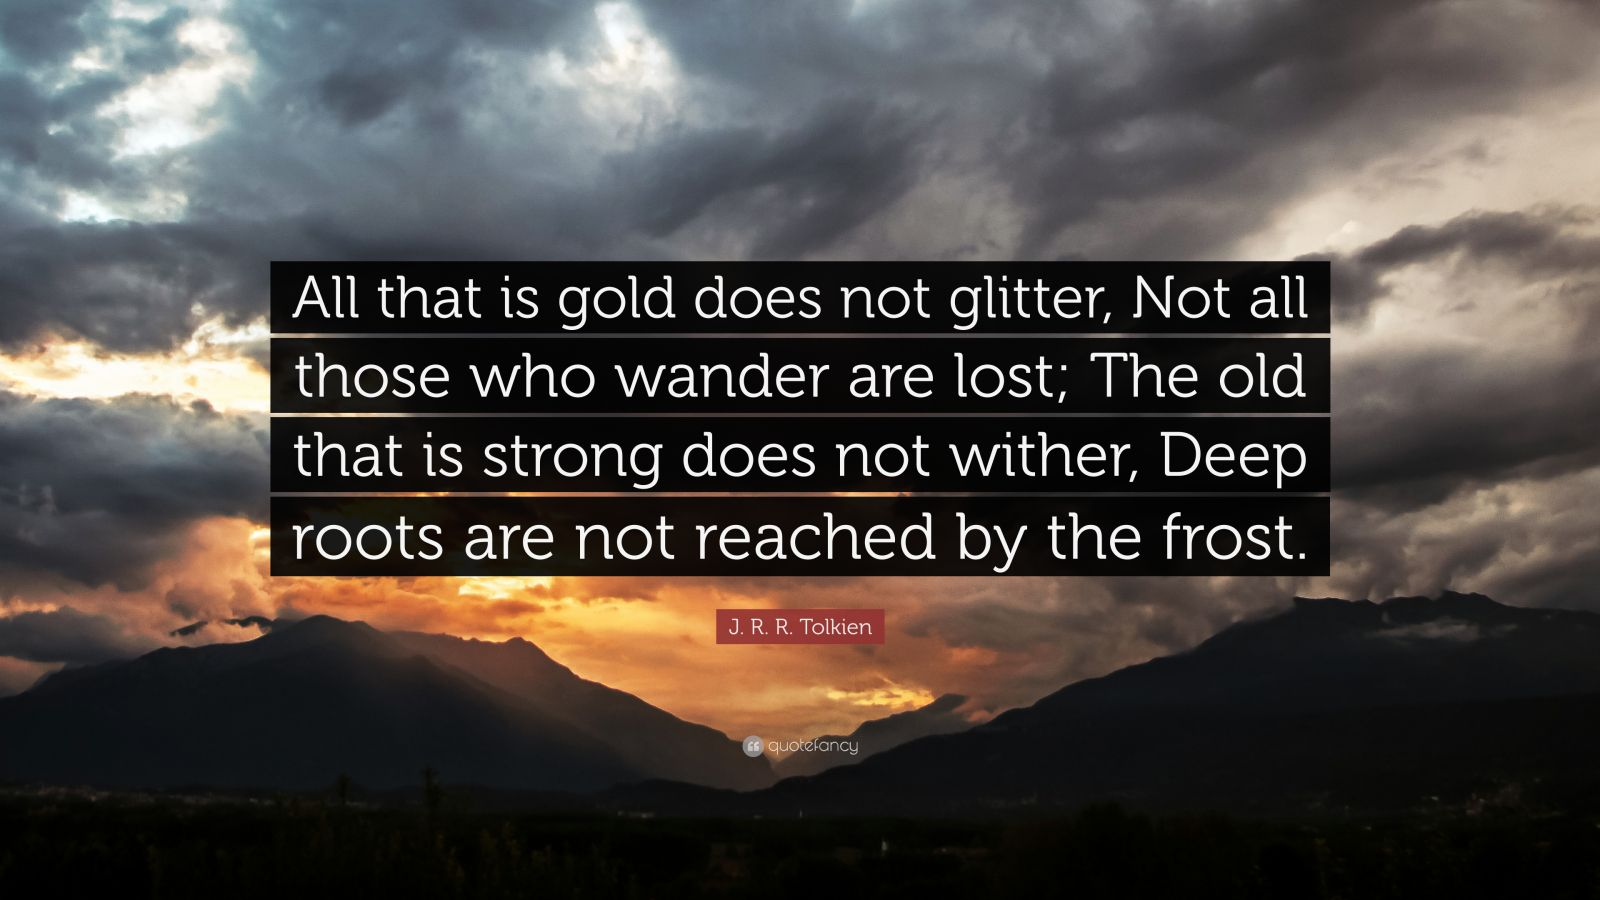 """J. R. R. Tolkien Quote: """"All that is gold does not glitter, Not all those who wander are lost; The old that is strong does not wither, Deep roots are not reached by the frost."""""""